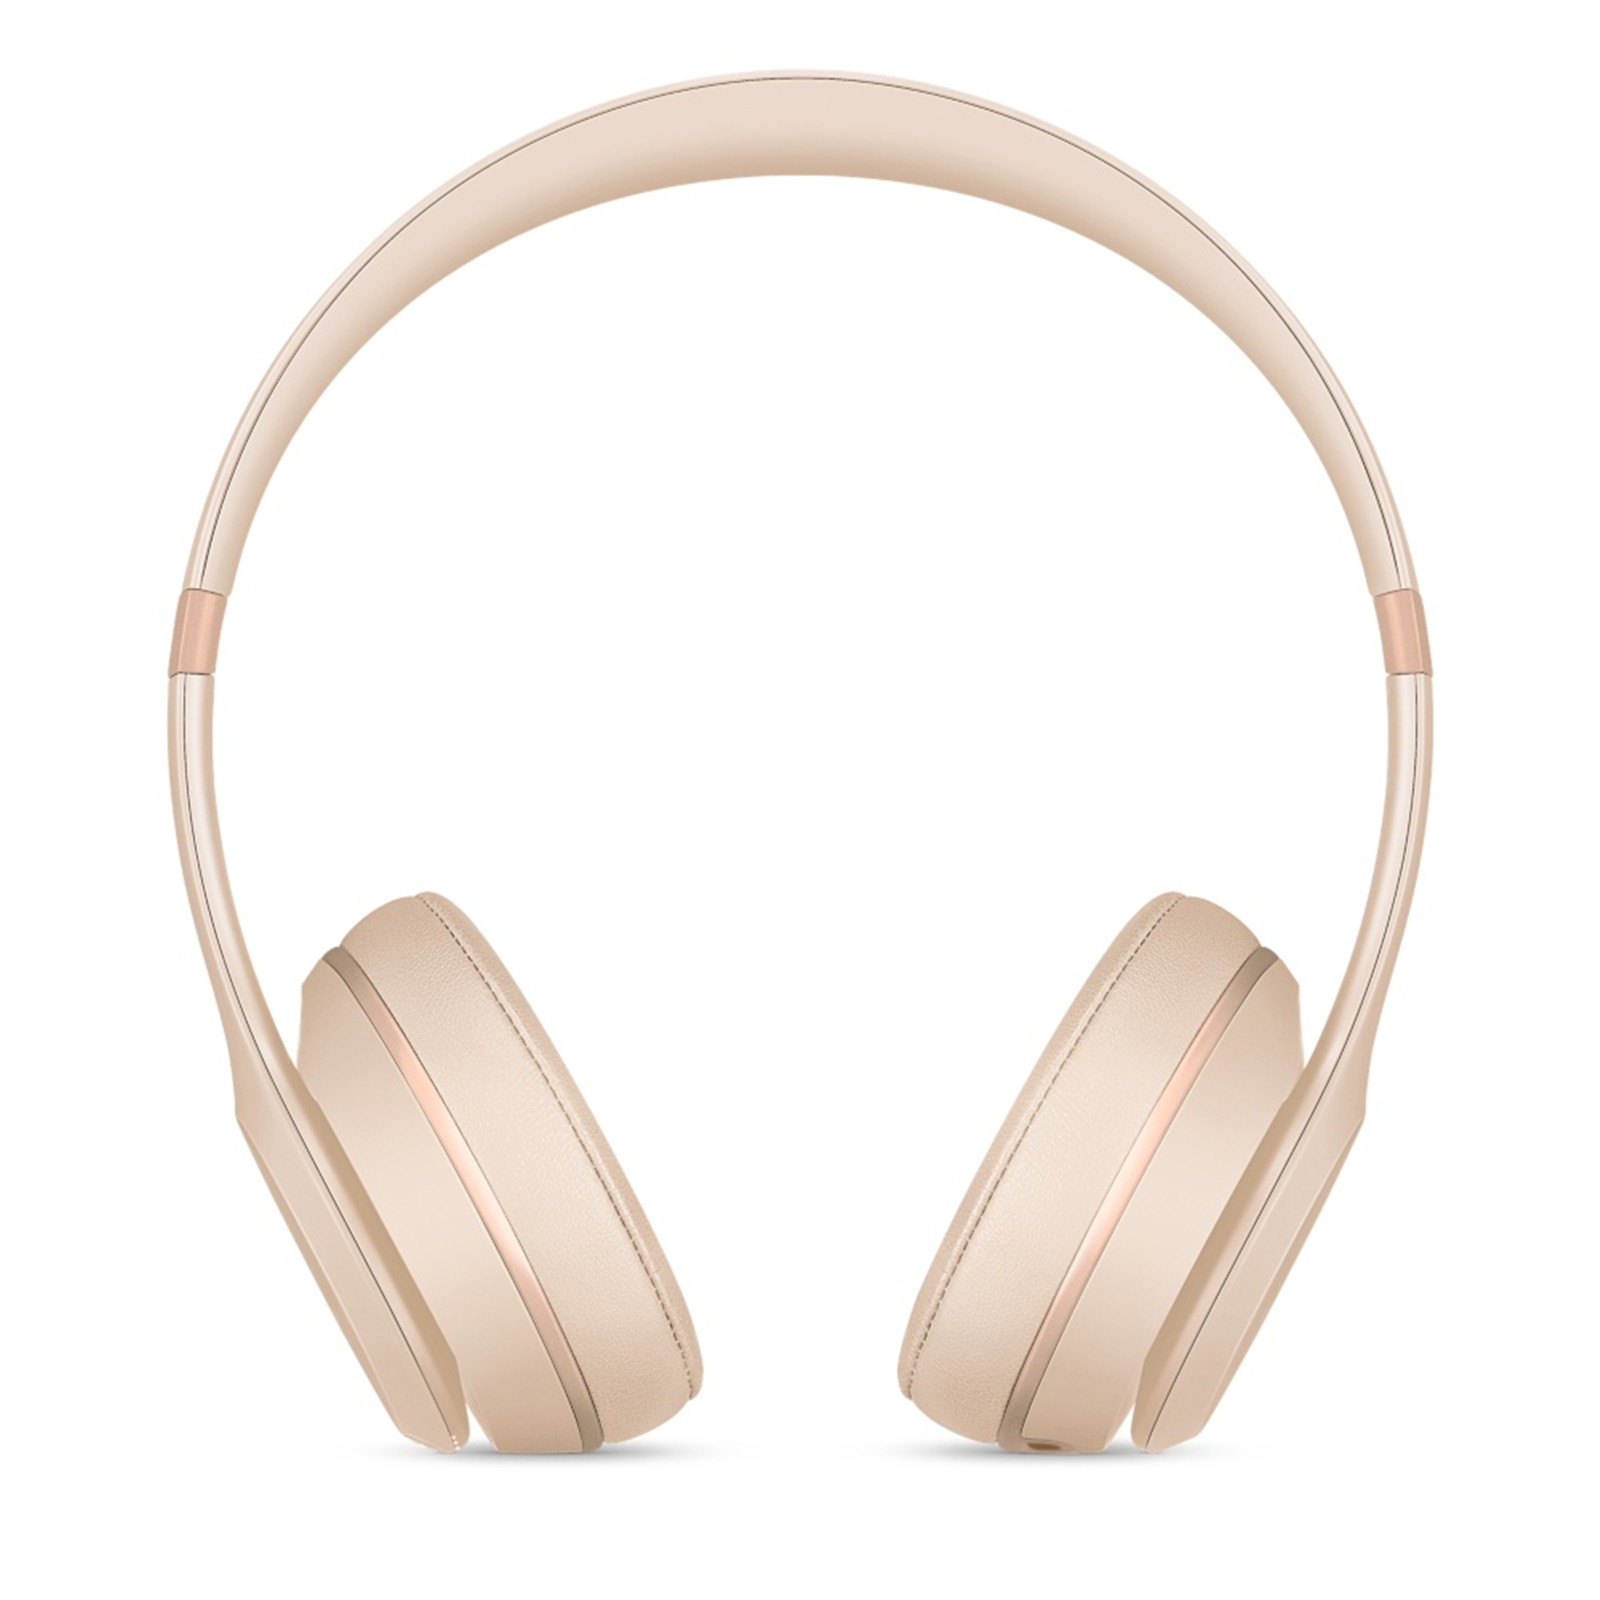 24e823a9152 Beats Solo3 Wireless On-Ear Headphones - Matte Gold Up to 40 hours of  battery life for multi-day use